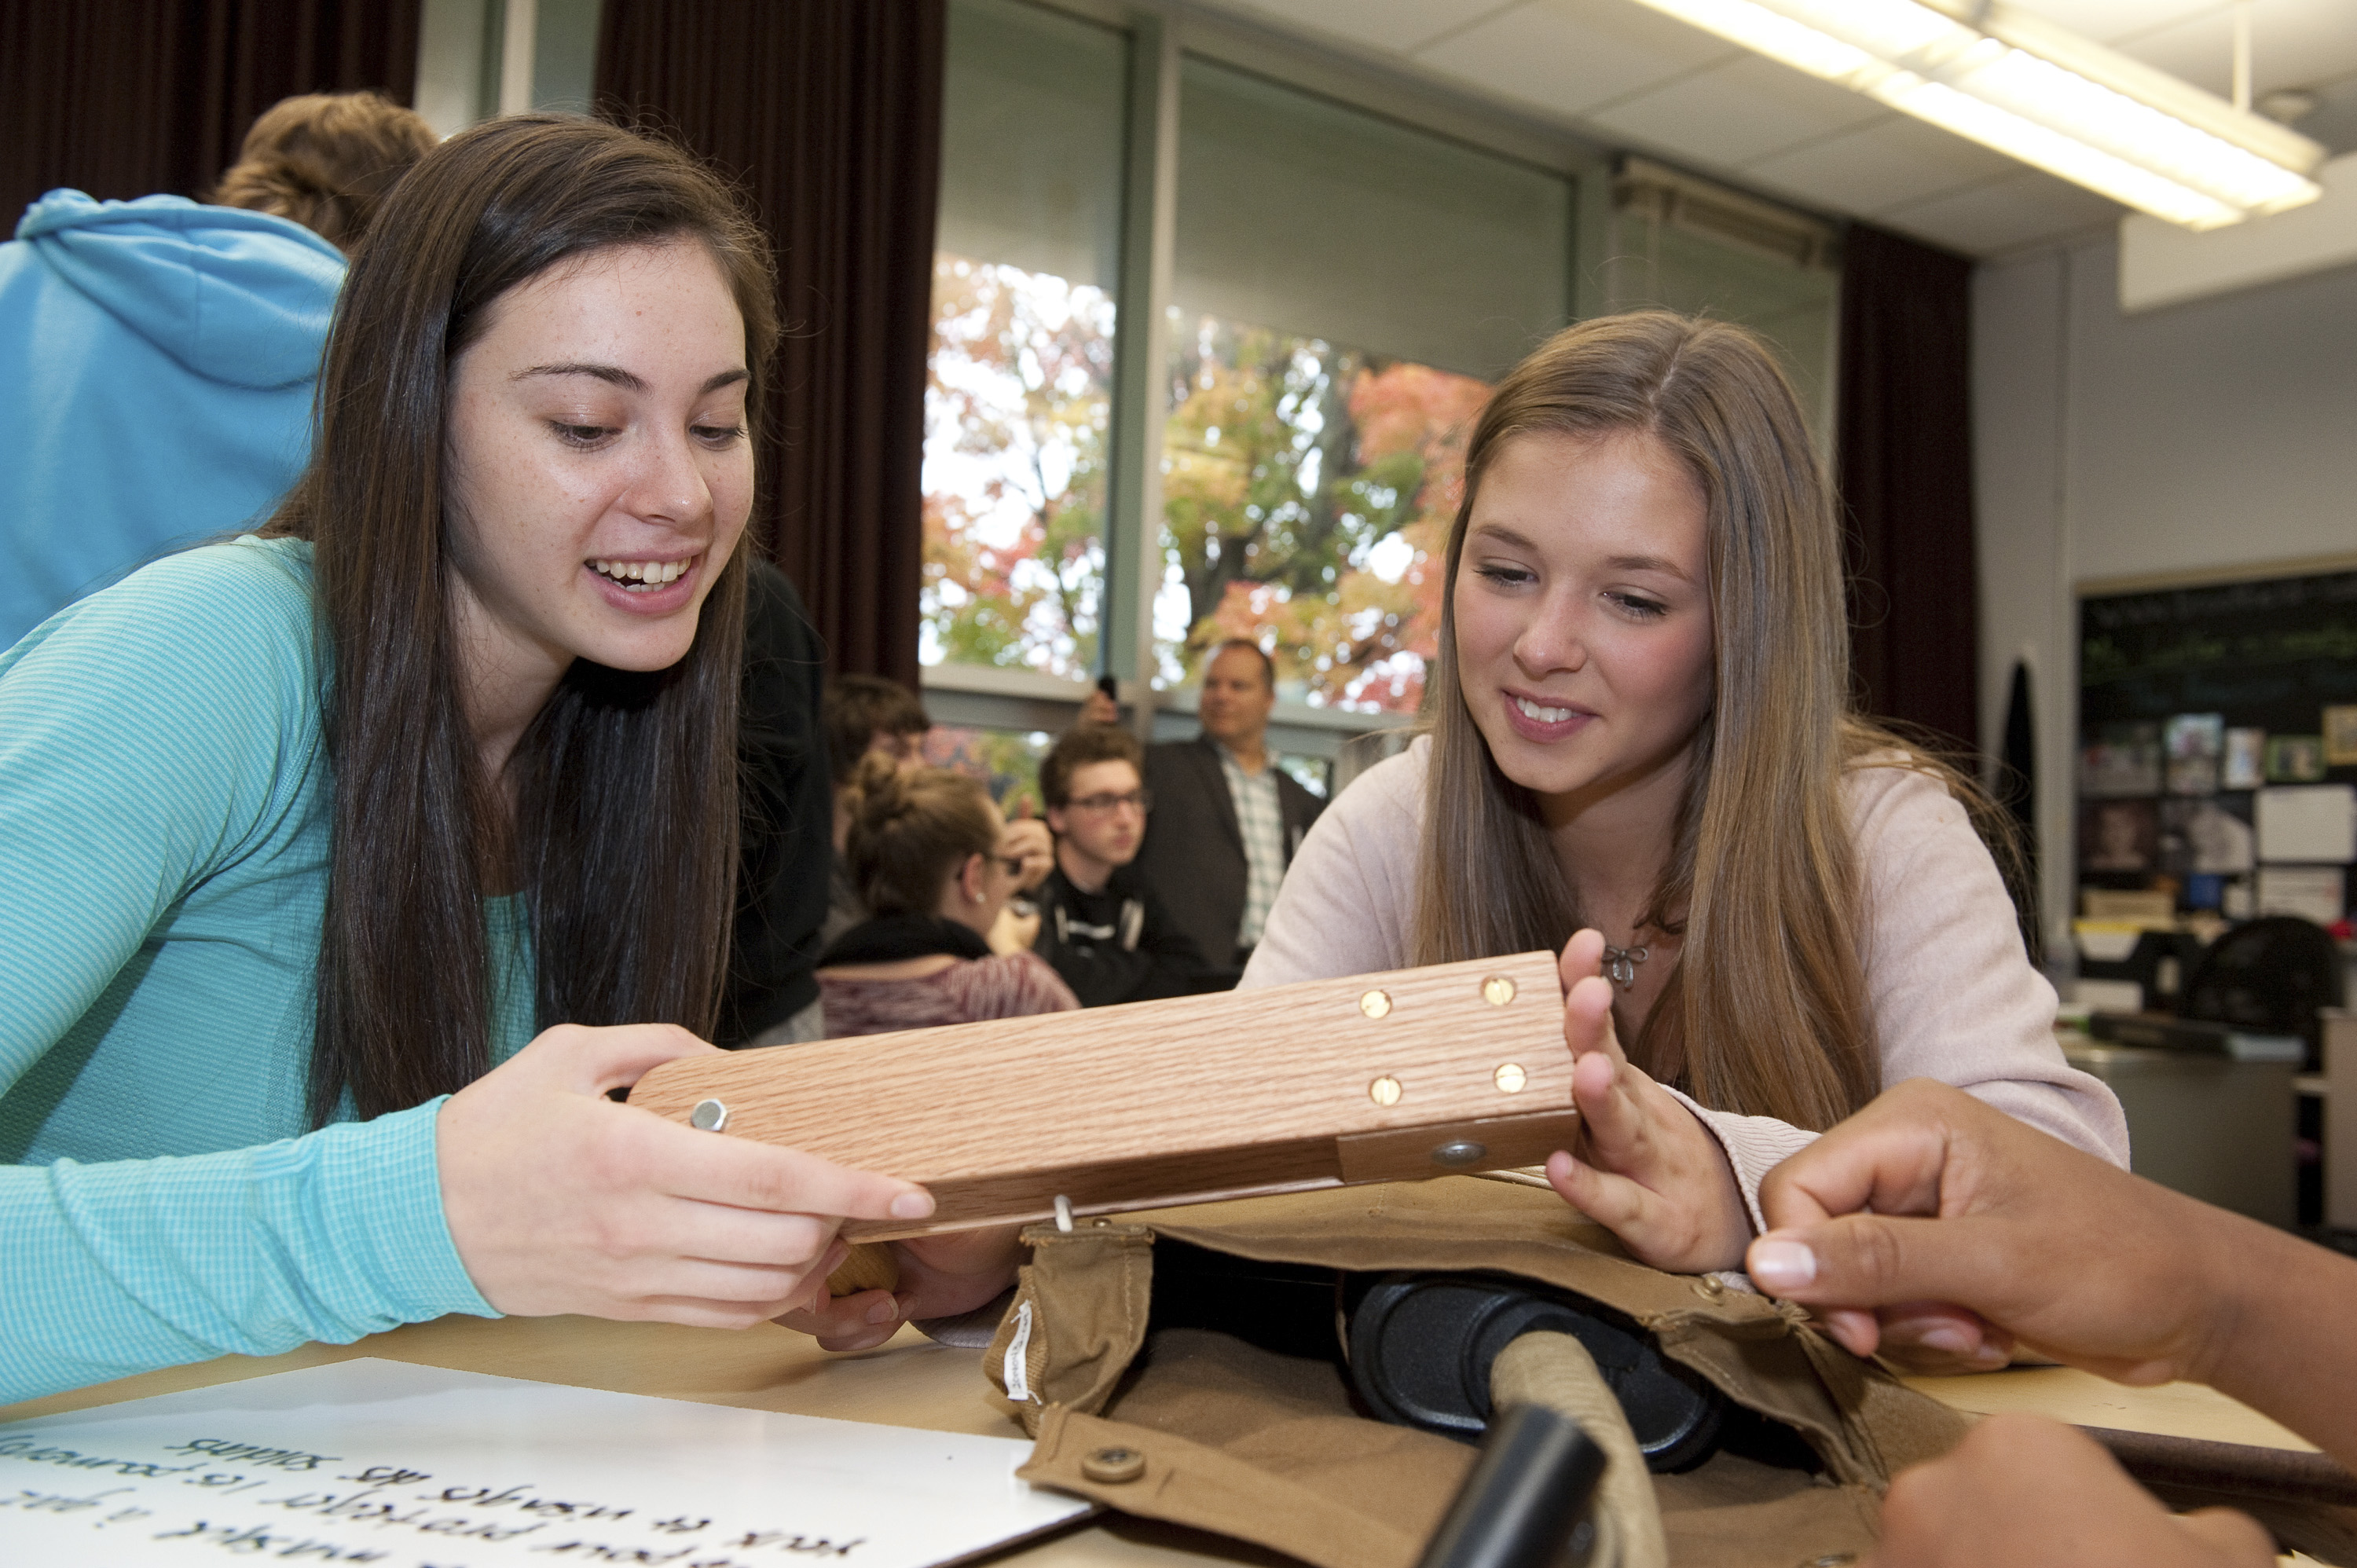 Students examine a gas alarm rattle, one of the artifacts found in the Canadian War Museum's Supply Line First World War Discovery Box.